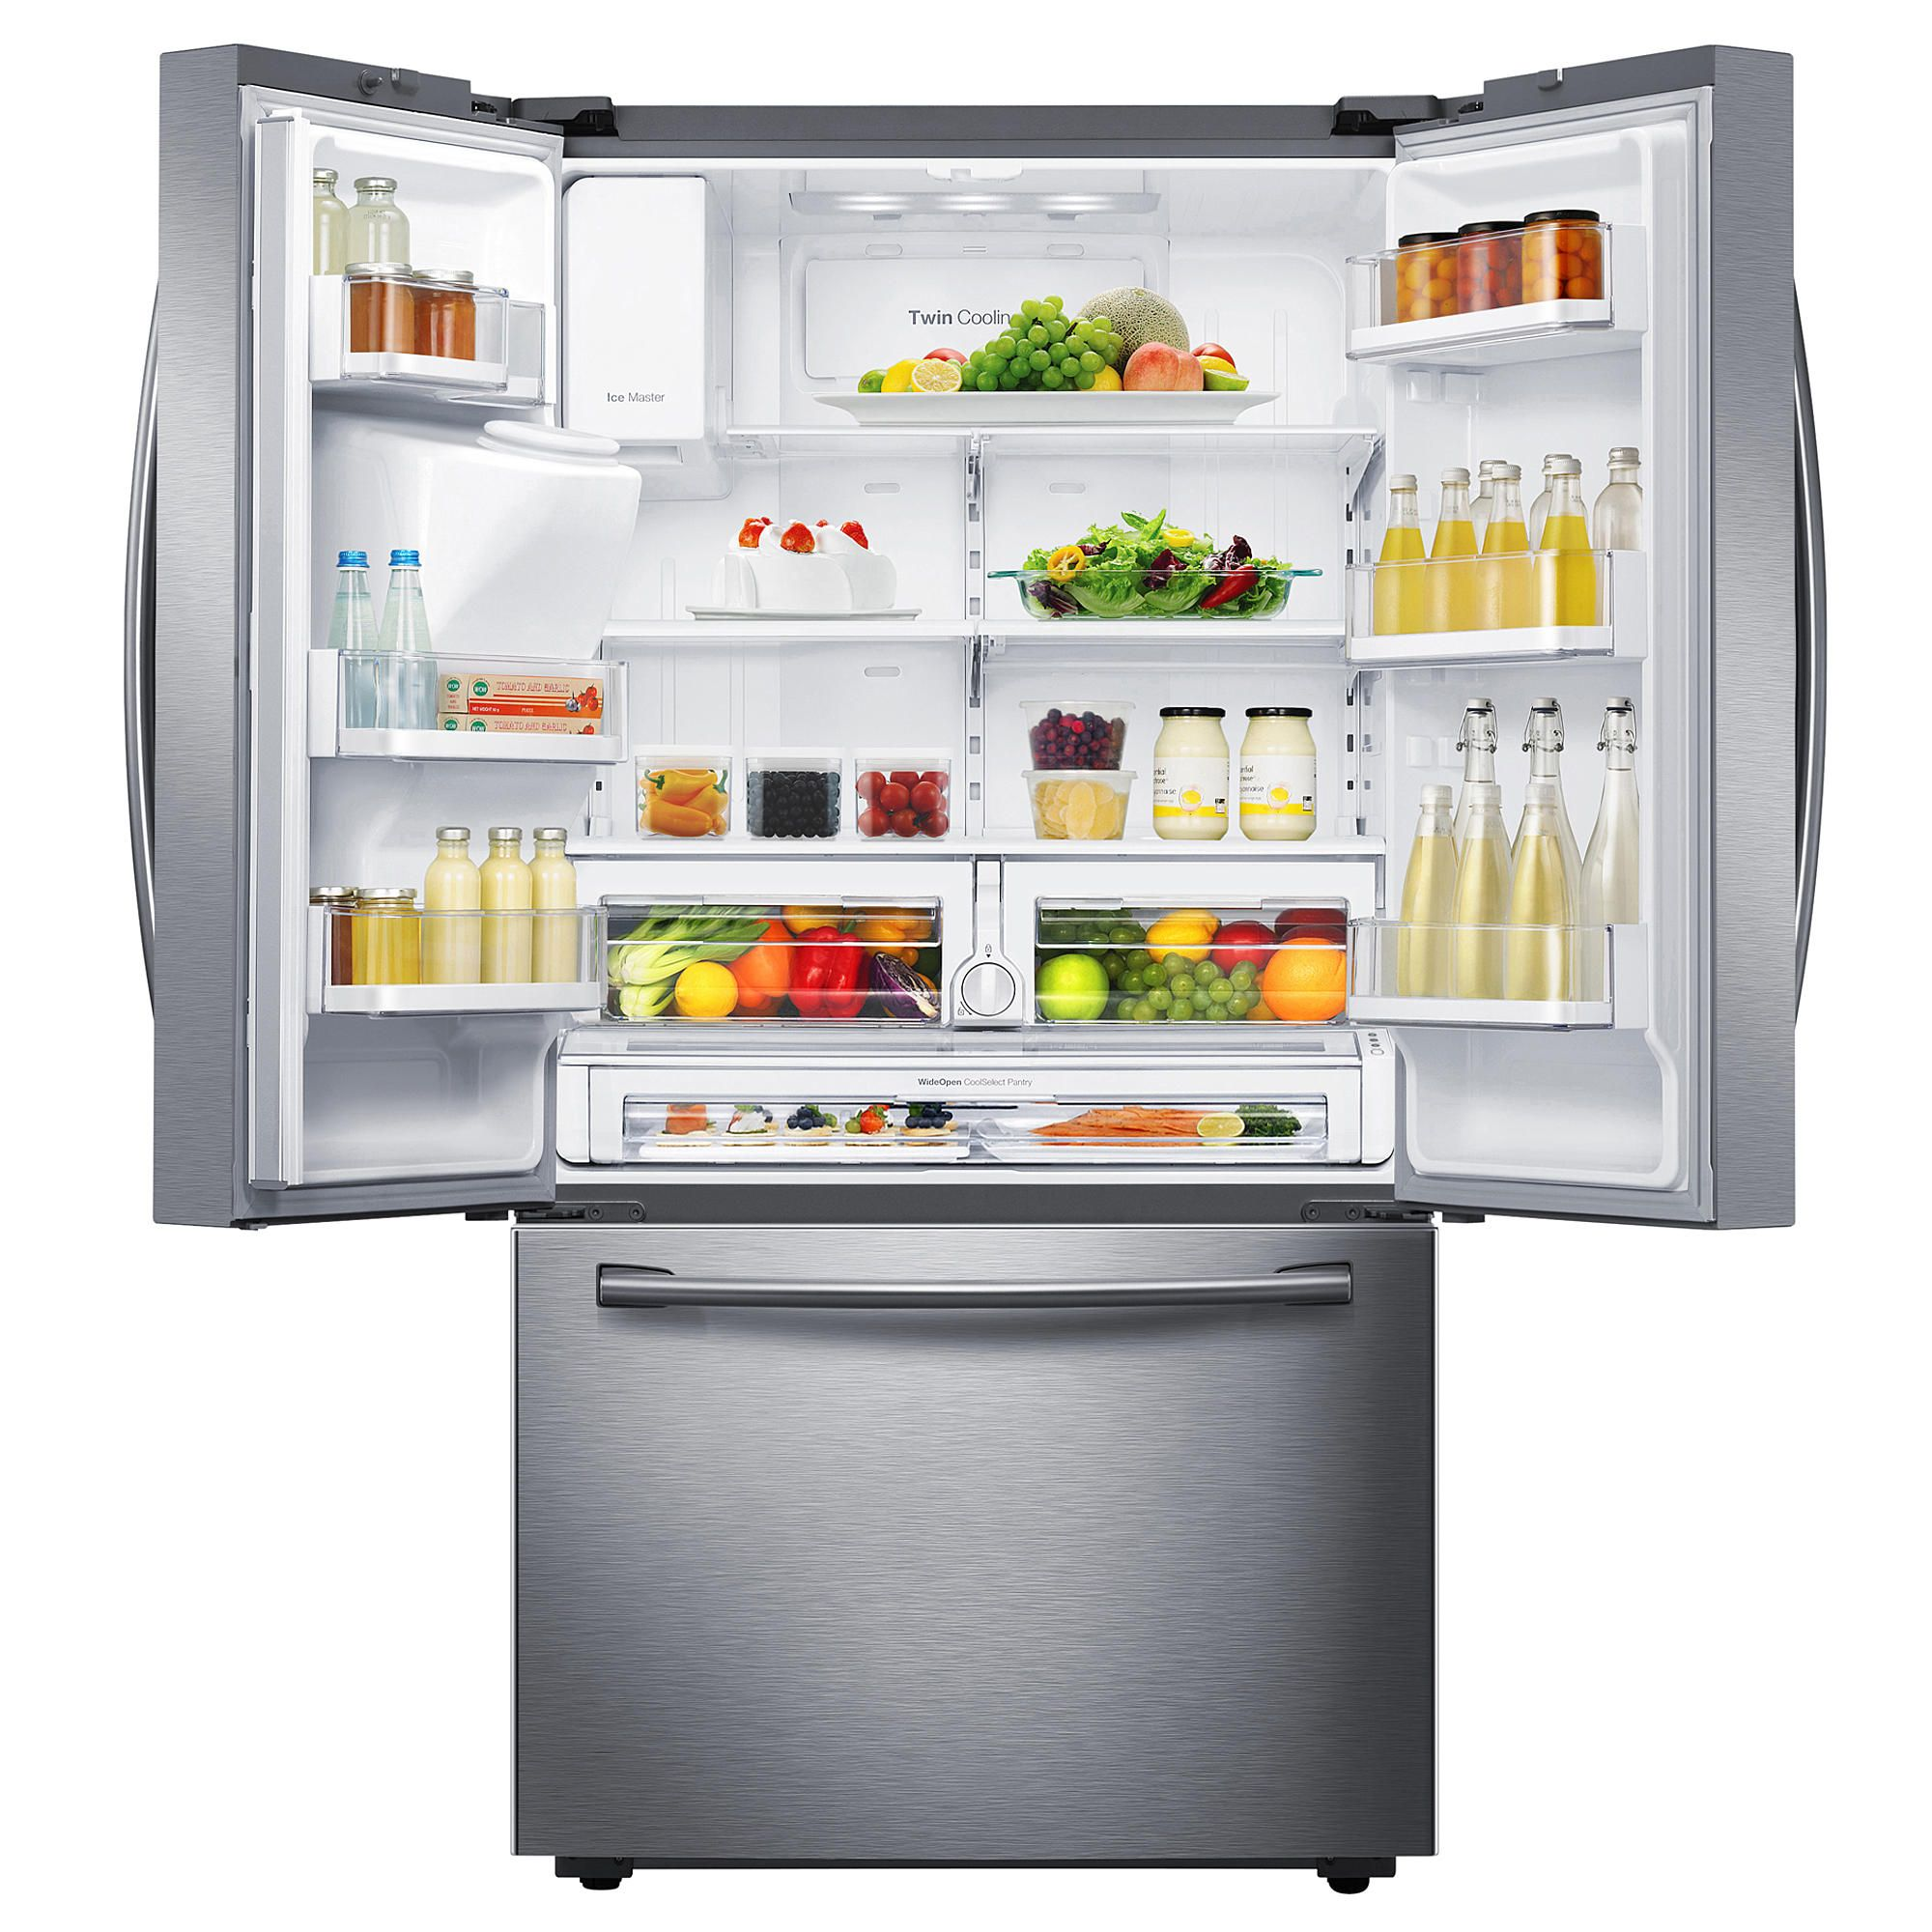 Samsung 28 cu ft french door refrigerator fresh and flexible samsung 28 cu ft french door refrigerator fresh and flexible food storage rubansaba